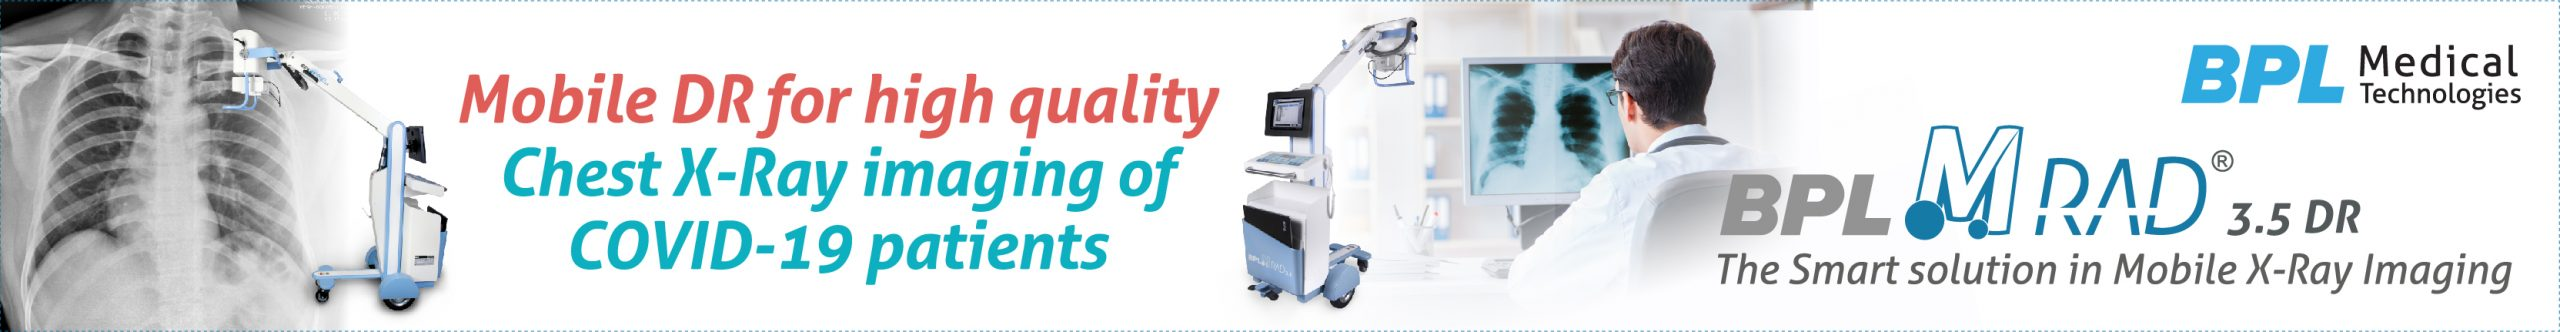 Mobile DR for high quality chest X-ray